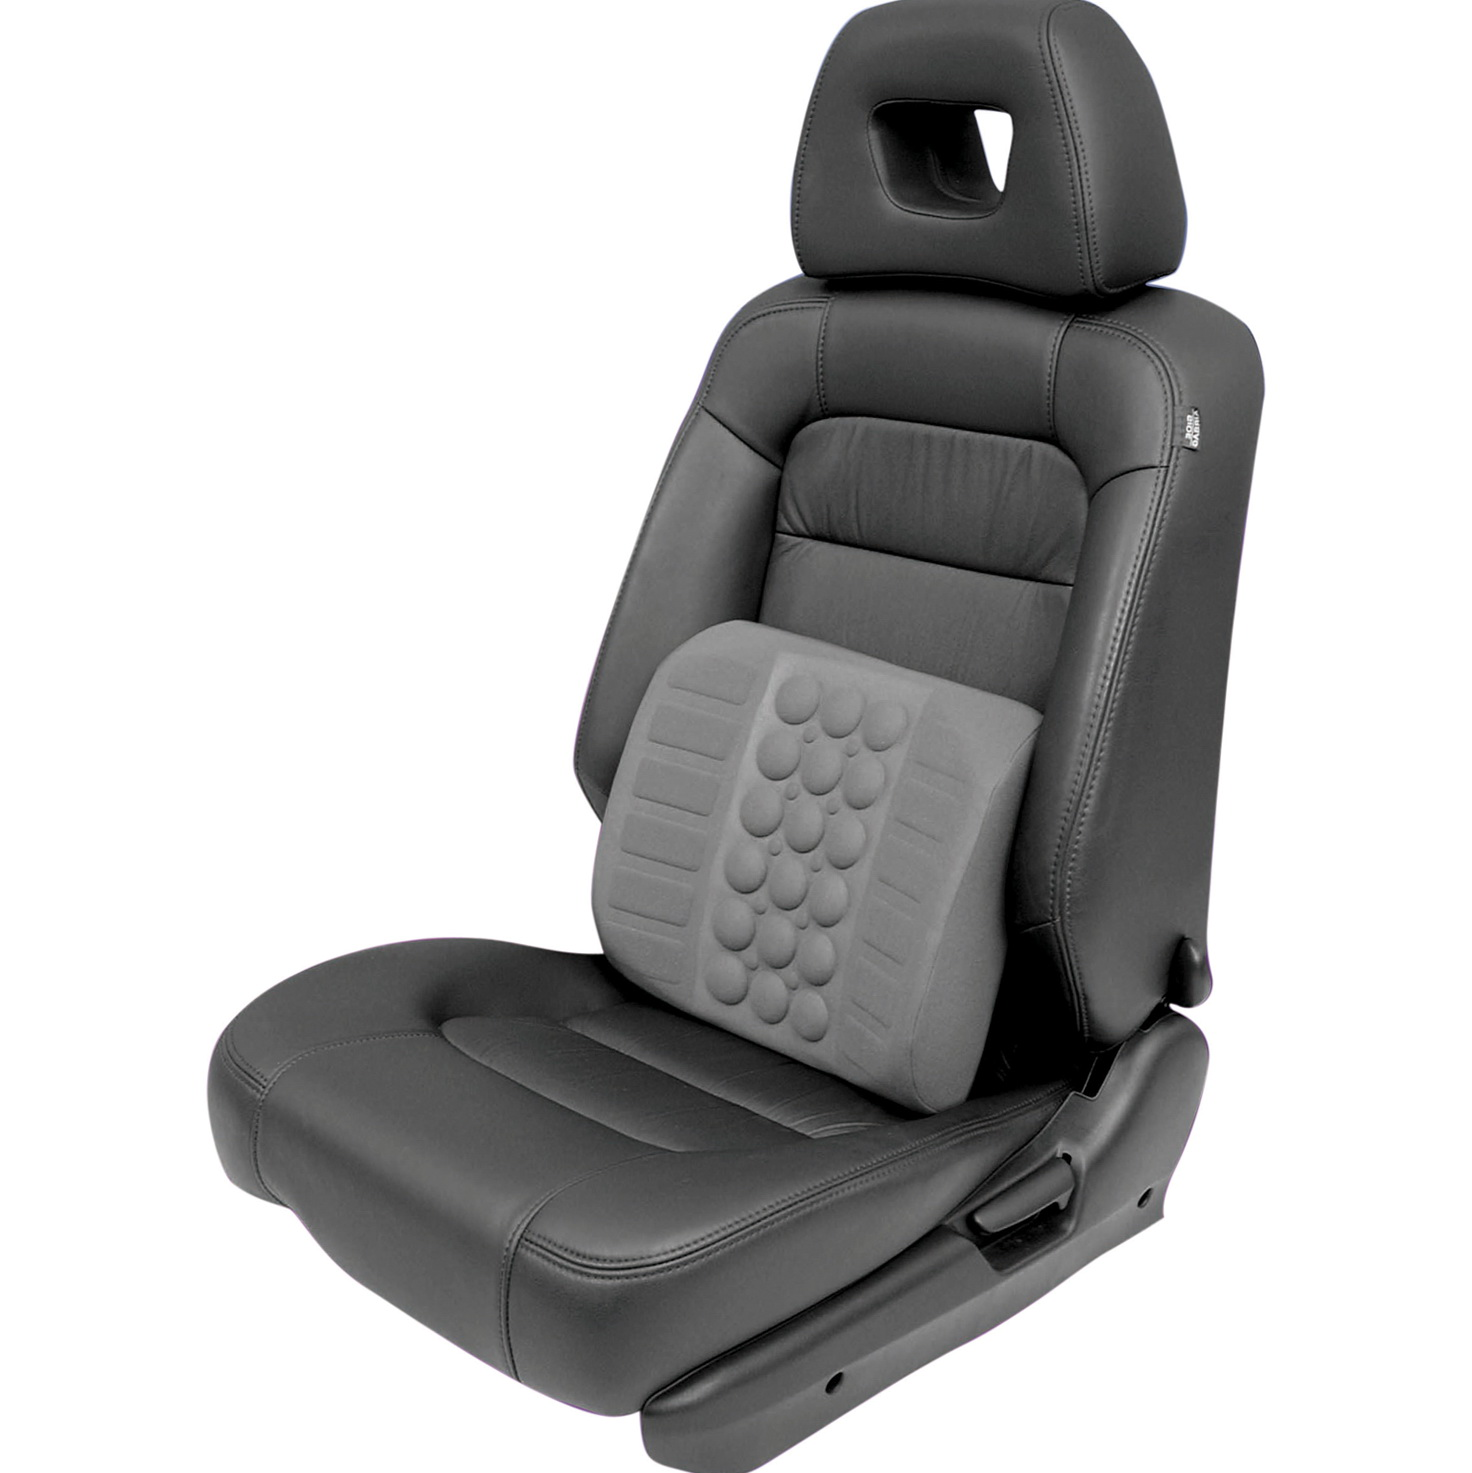 Seat Cushions For Cars For Short Drivers Home Design Ideas